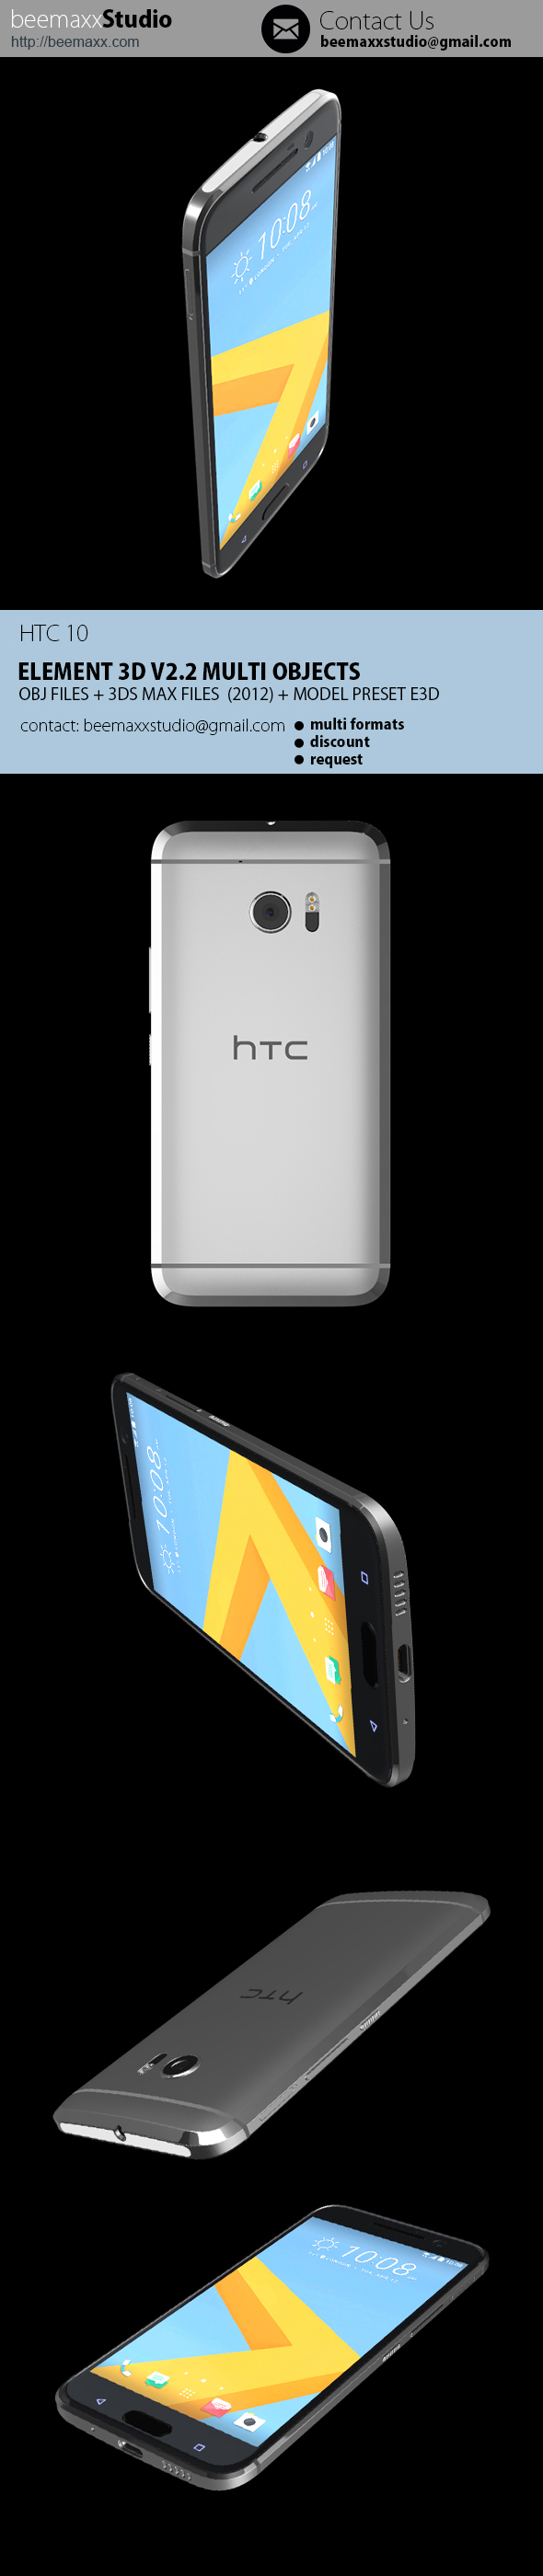 E3D - HTC 10 - 3DOcean Item for Sale